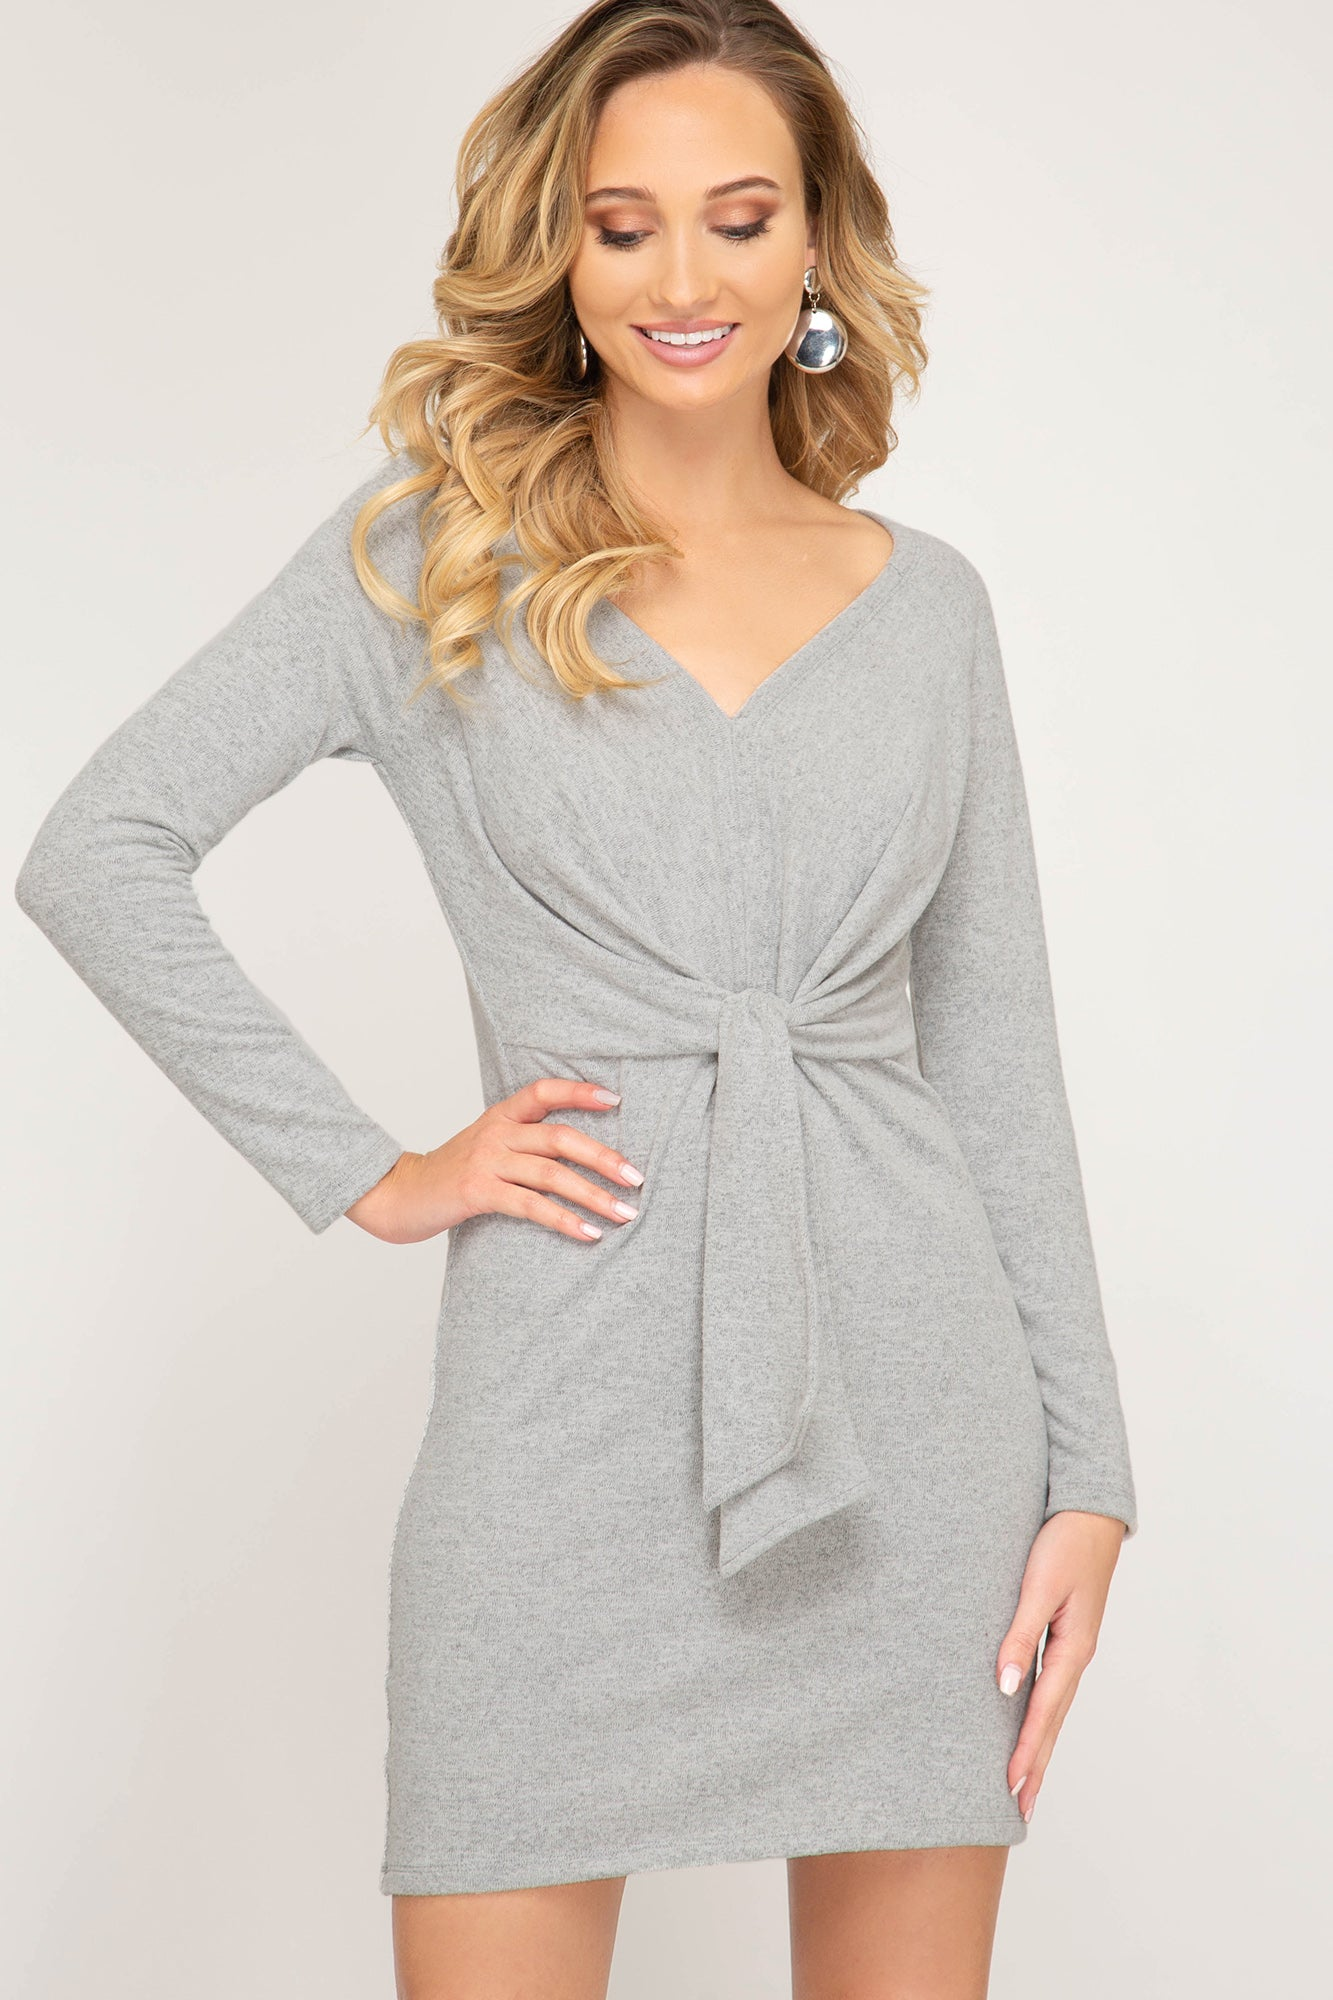 Avery Long Sleeve Brushed Knit Dress